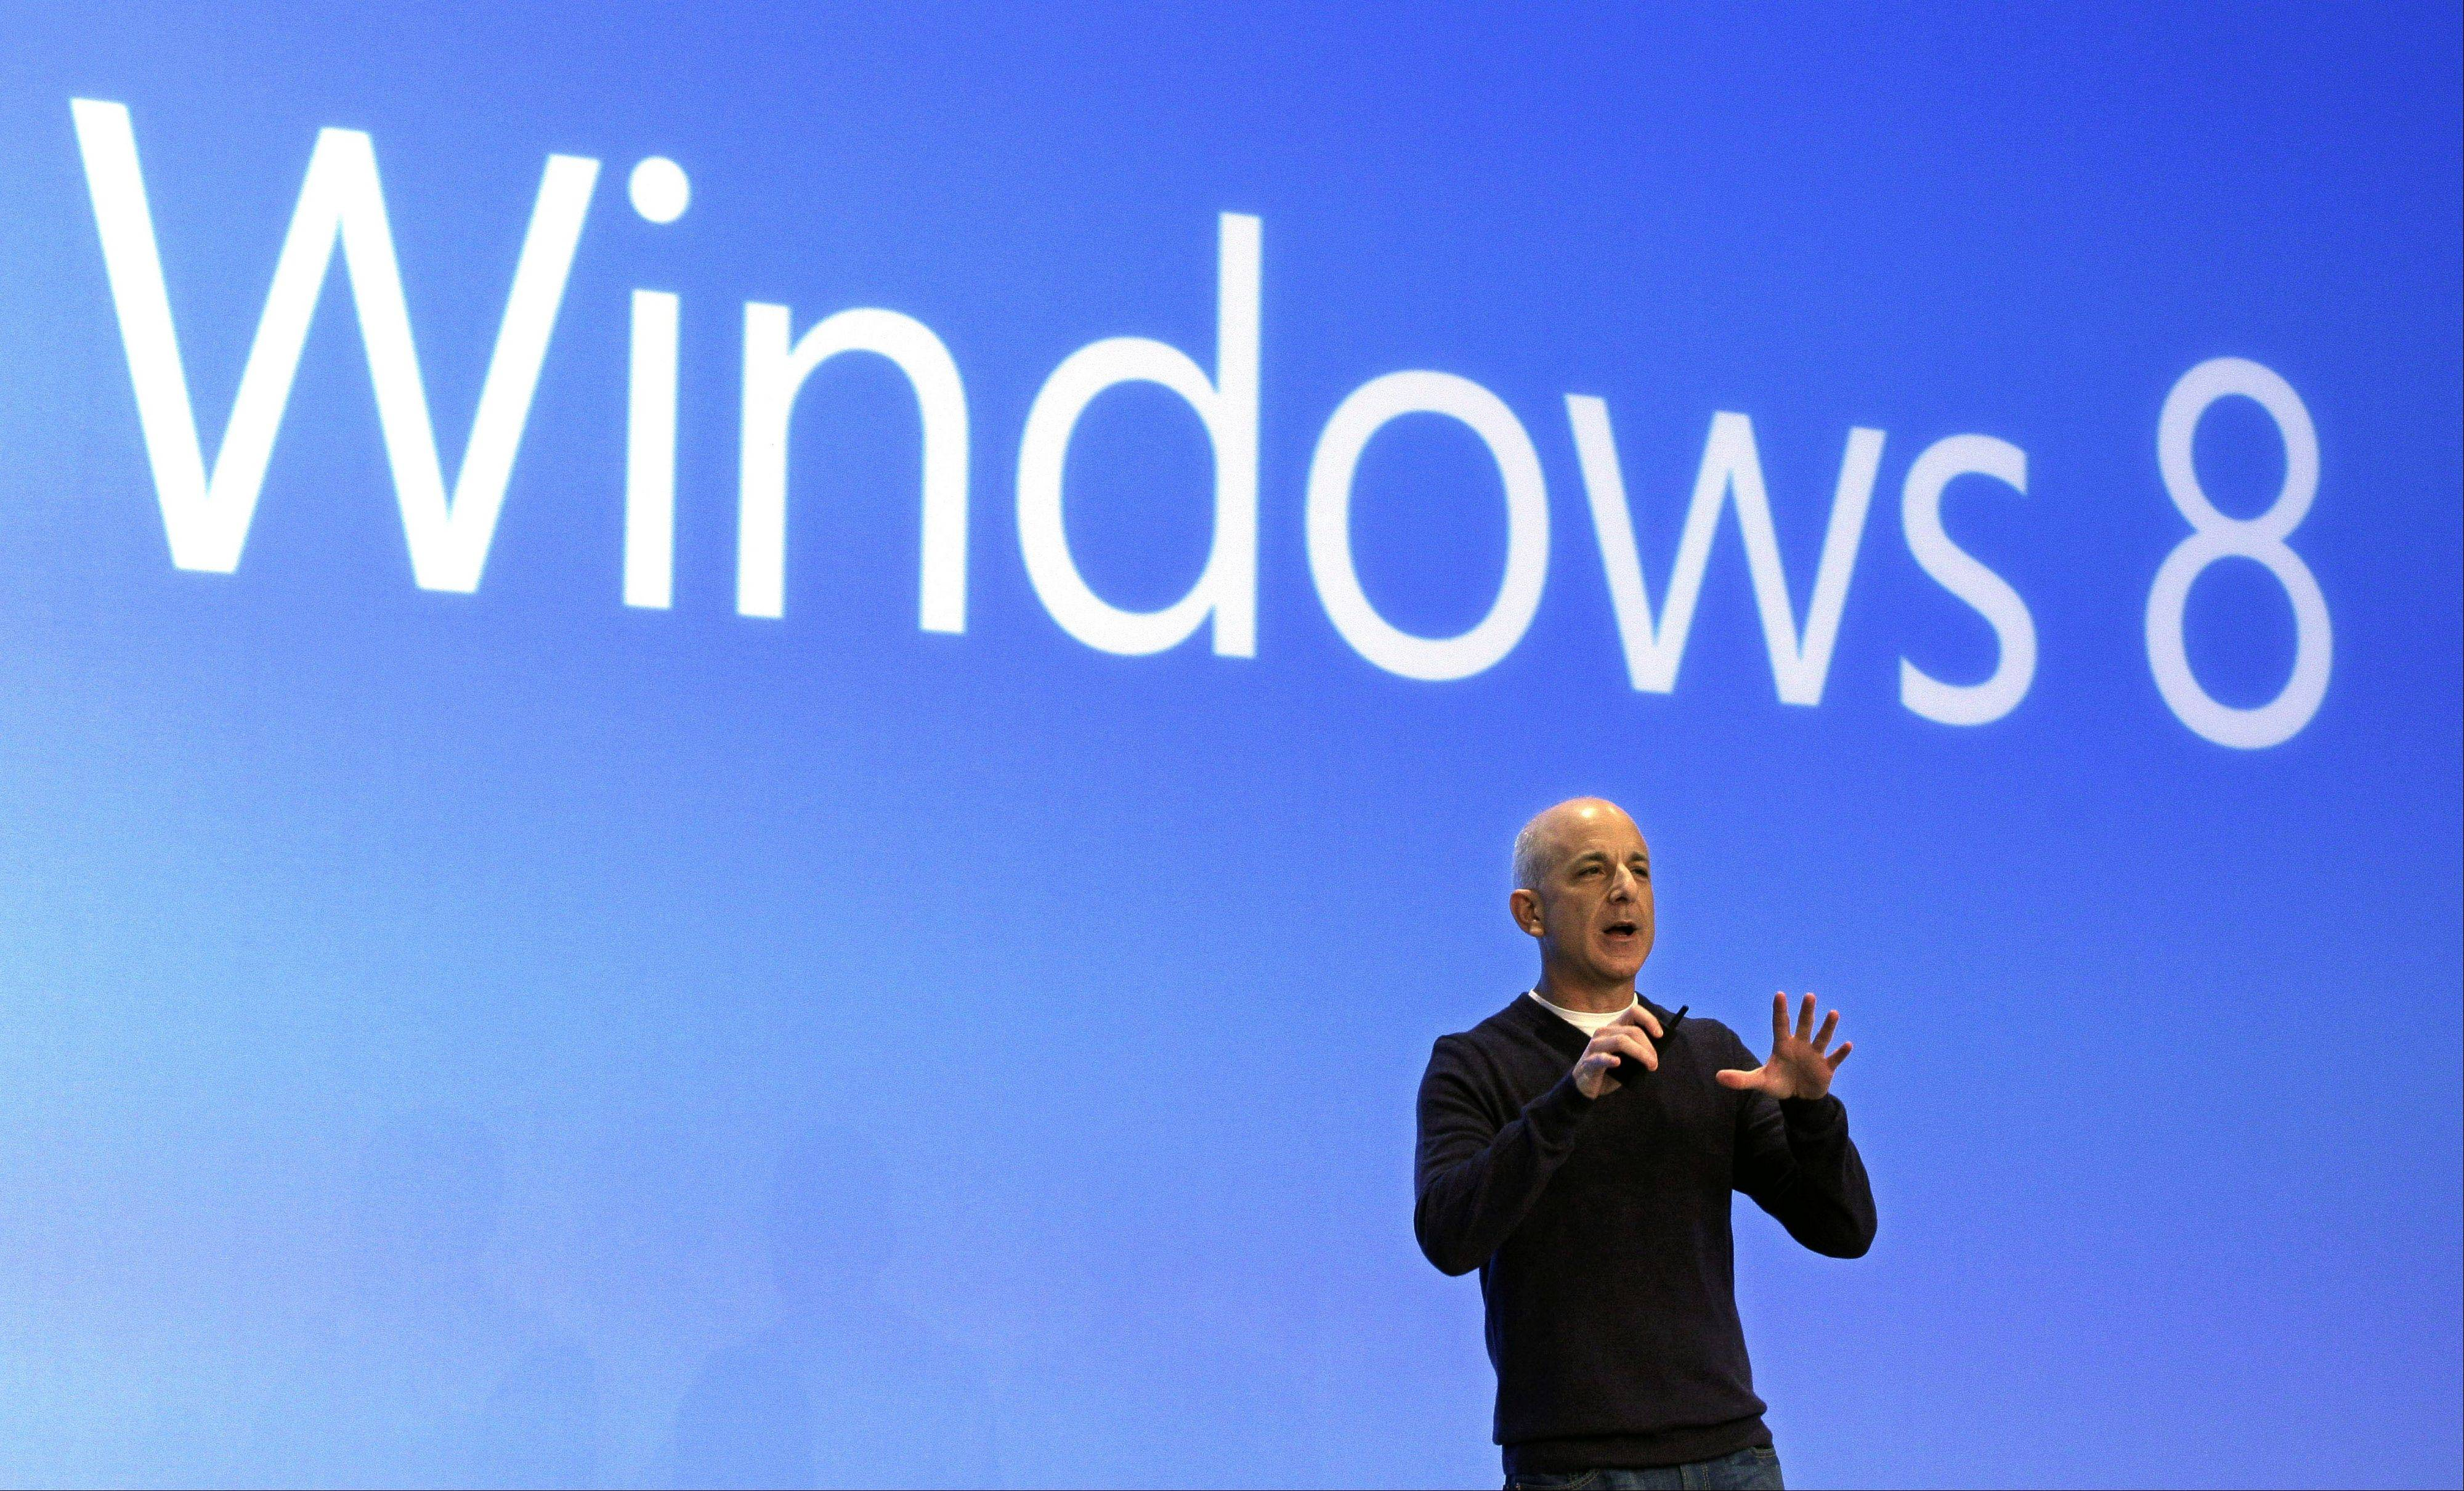 Steven Sinofsky's departure from Microsoft comes just weeks after the company launched Windows 8, a major overhaul of the operating system that's used on most of the world's computers.